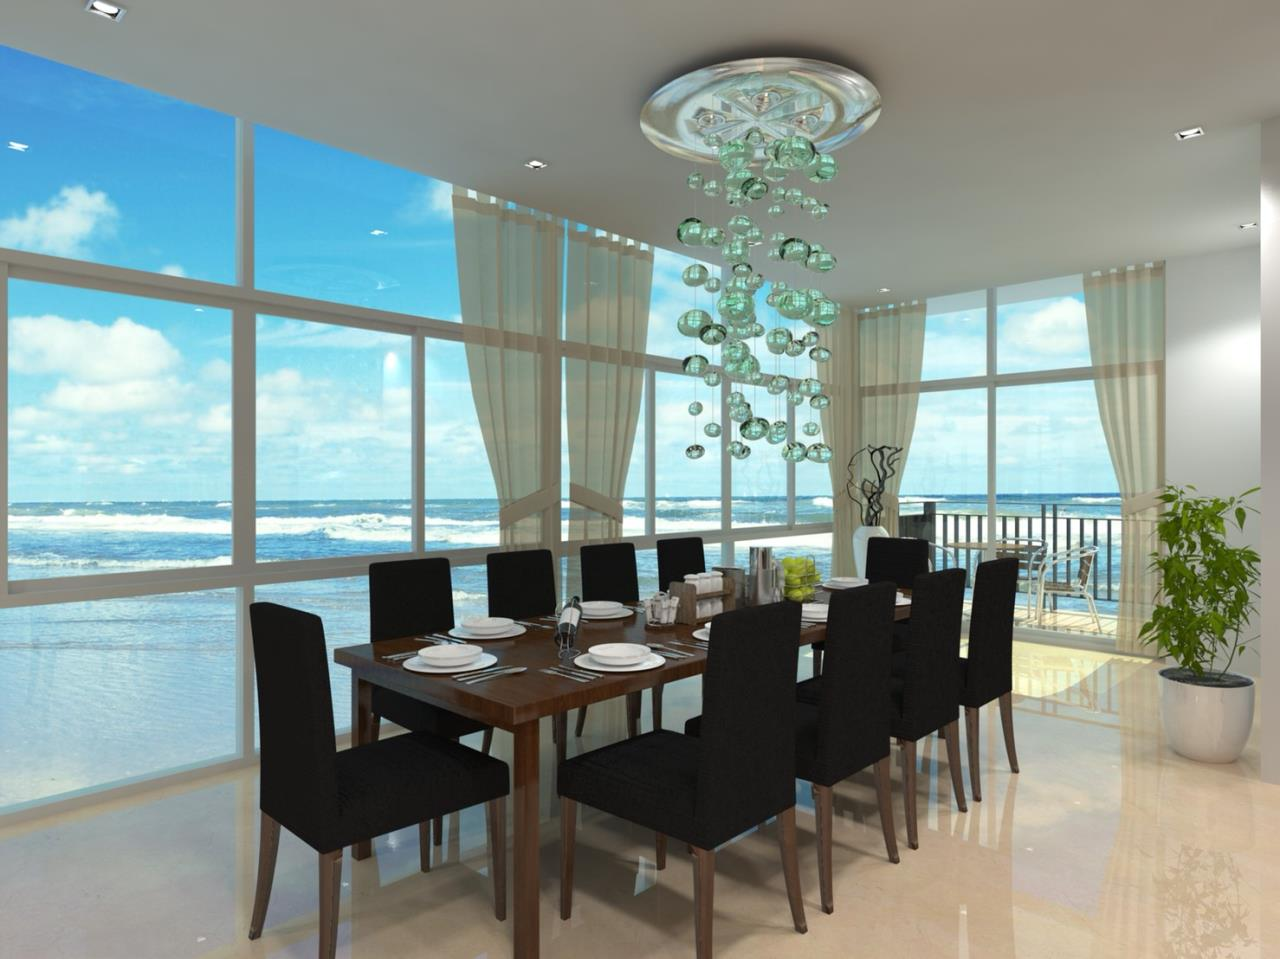 Signature Realty ( Thailand ) Co Ltd Agency's Furnished 2bedroom 65.75 sq.m condo with jacuzzi floor 12-20 at The Grand Jomtein Beach Pattaya 32